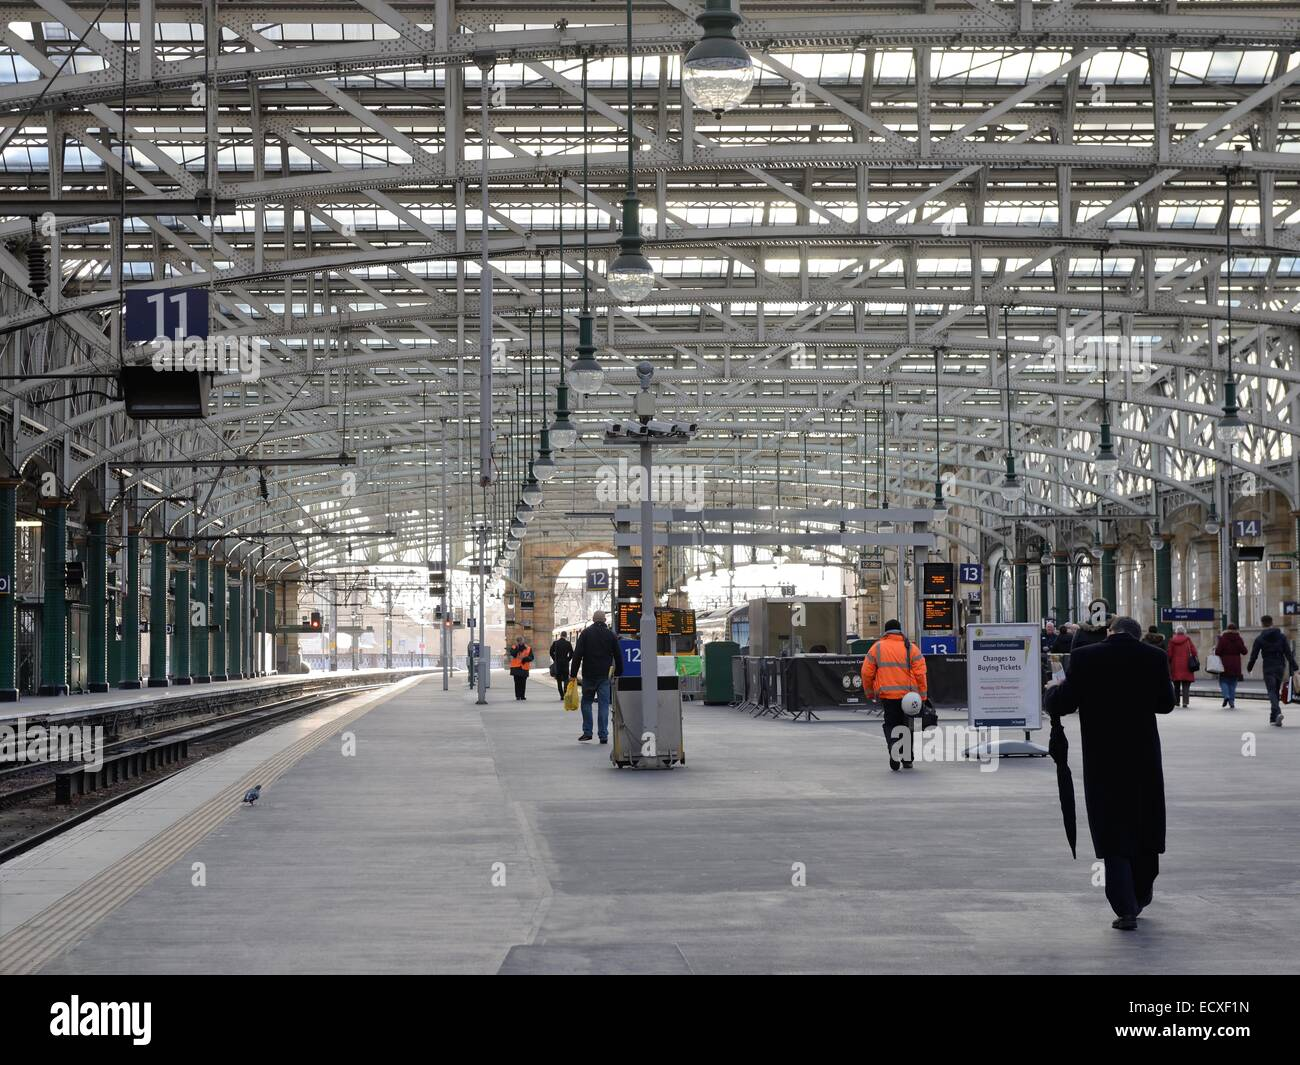 Platform and glass roof of Central Station, Glasgow, Scotland - Stock Image